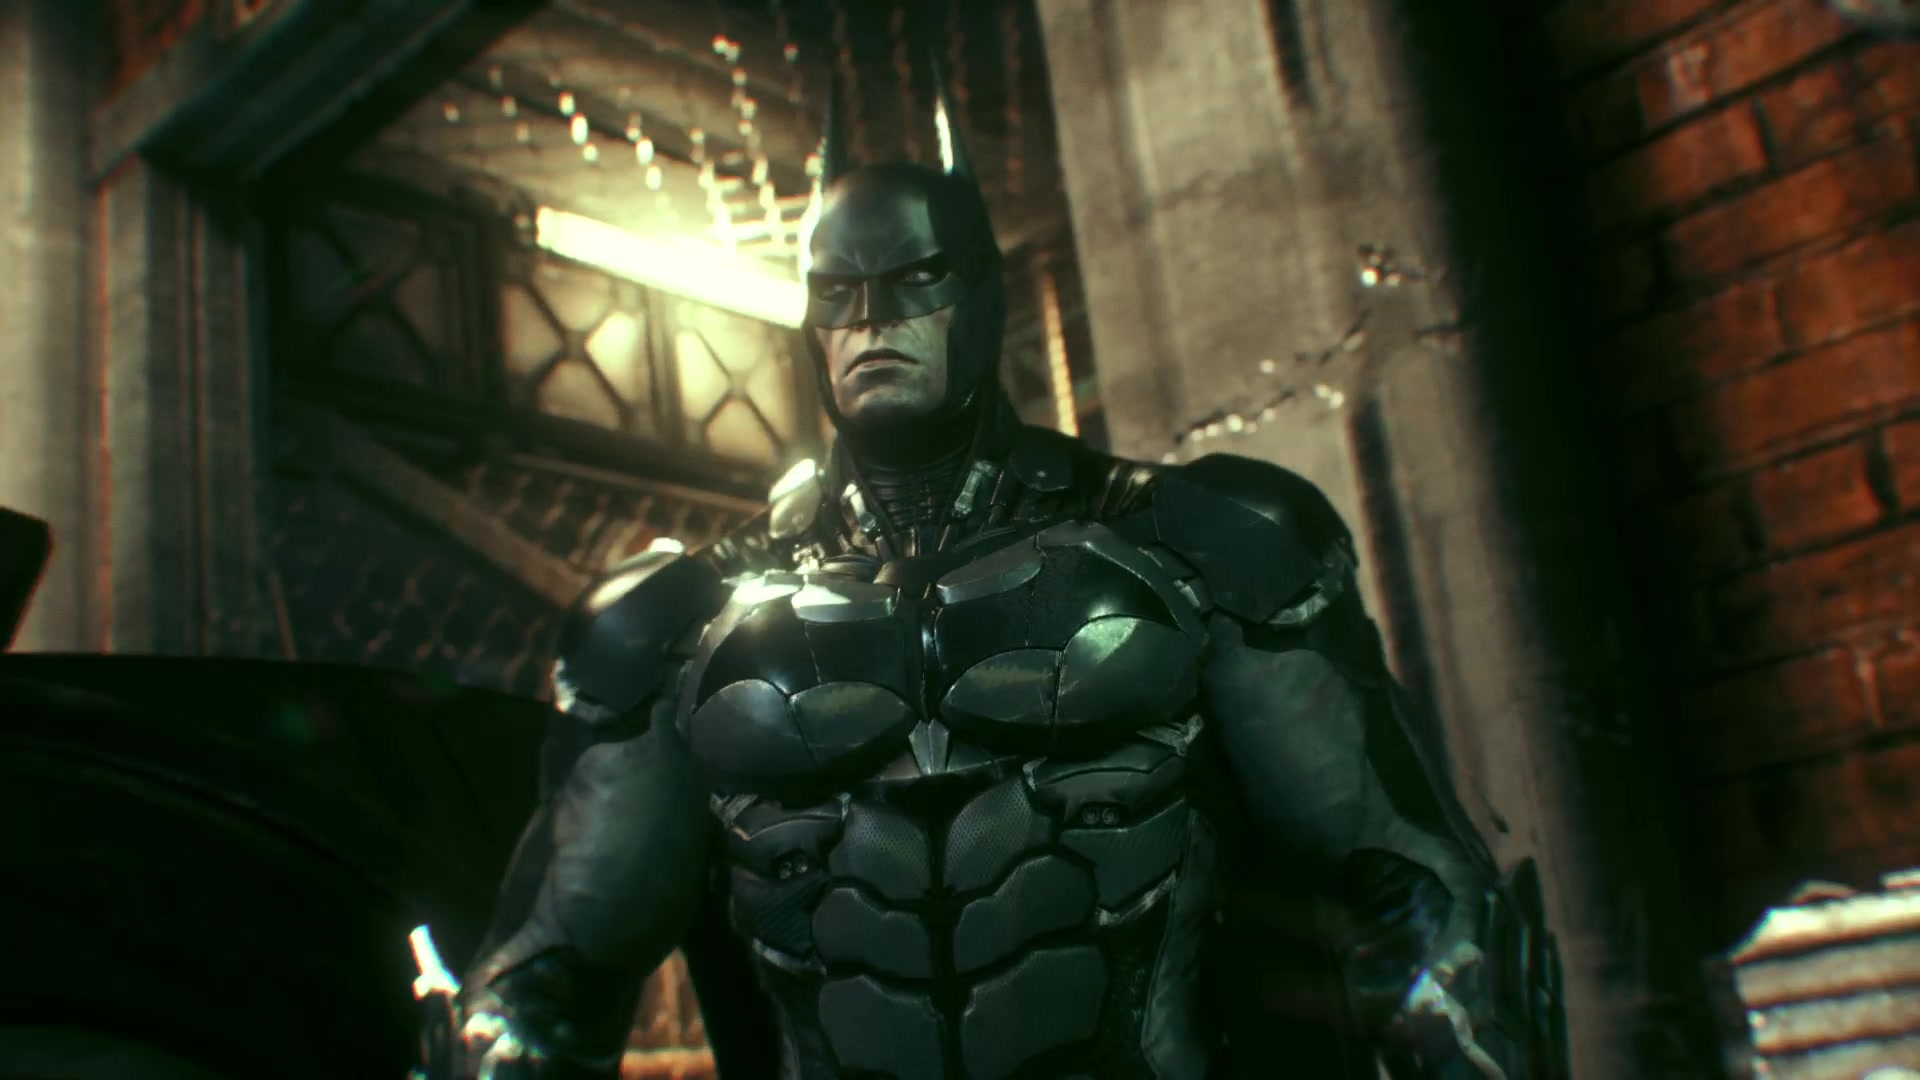 Бэтмен™_ Рыцарь Аркхема_20171005215106 051.jpg - Batman: Arkham Knight